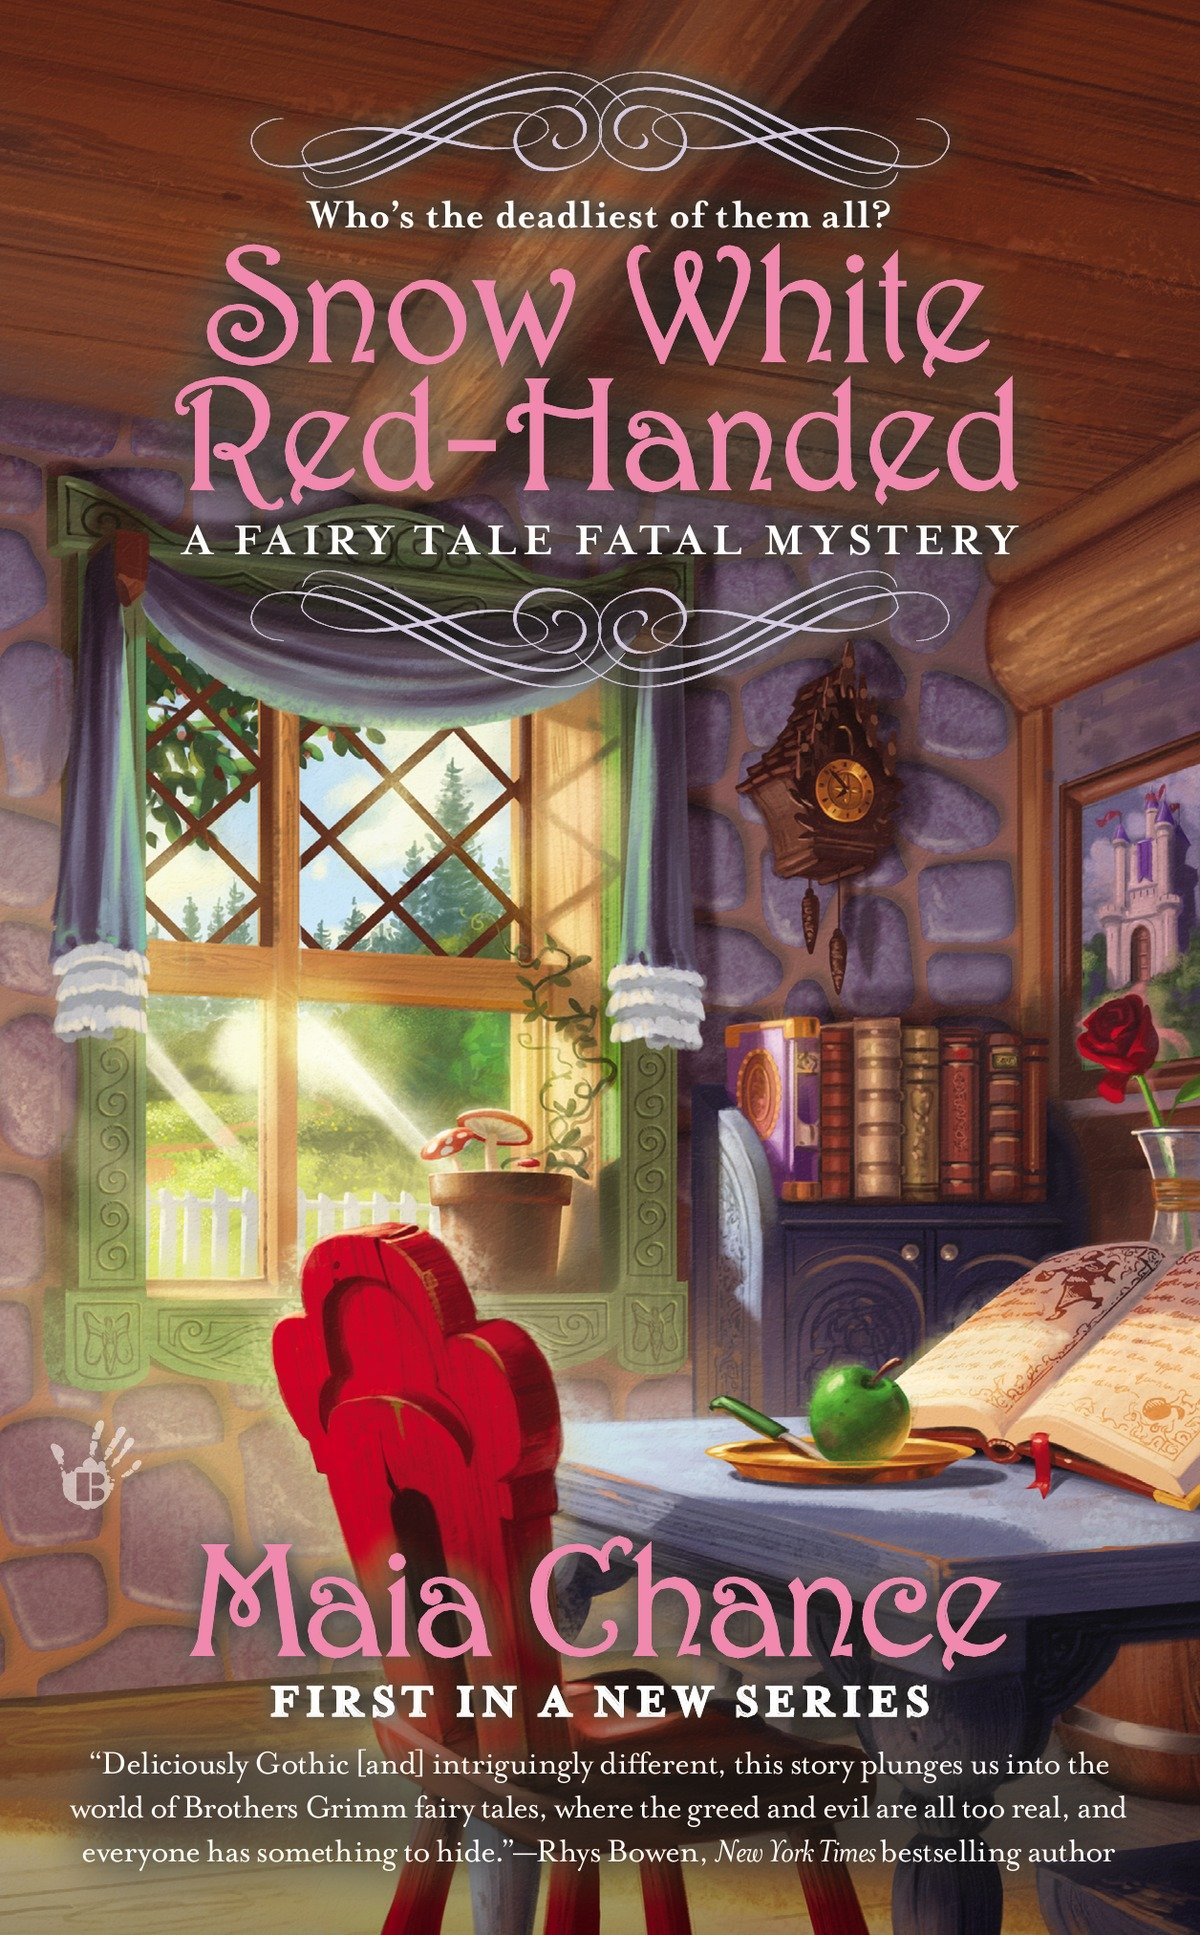 Snow White Red-Handed